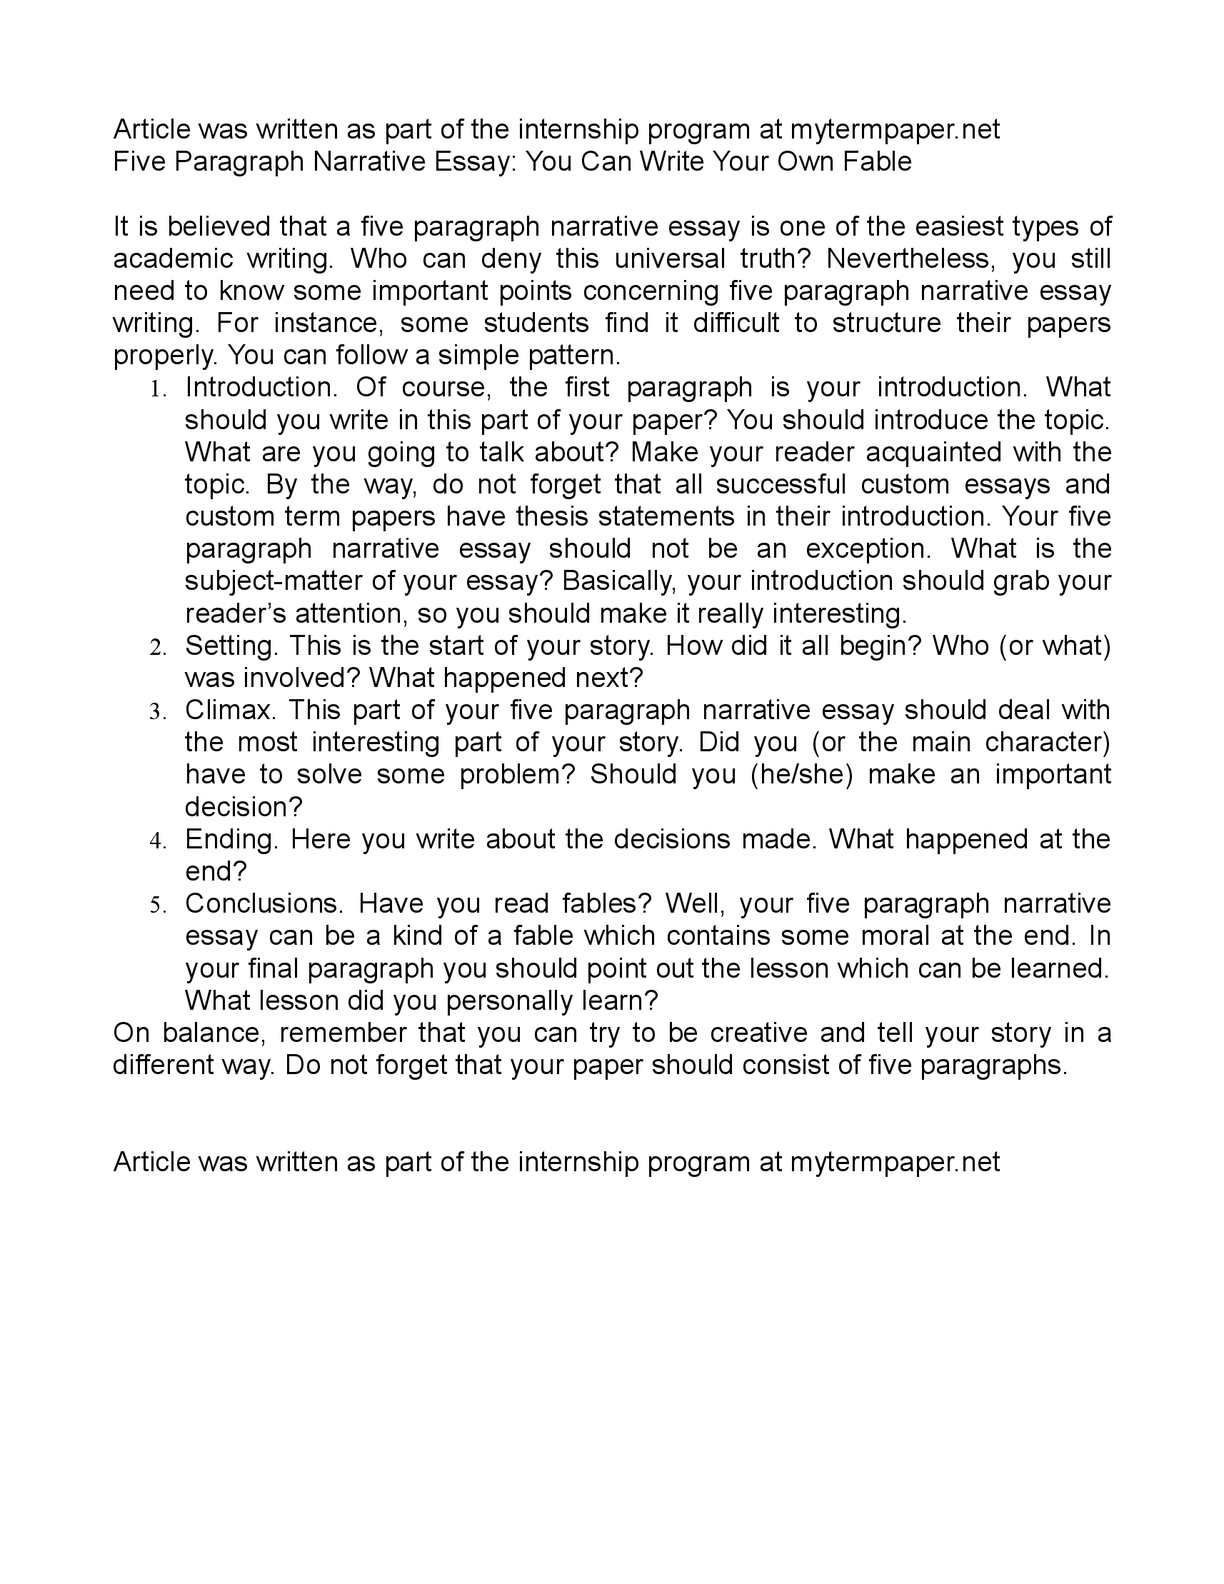 moral essay calam atilde copy o five paragraph narrative essay you  moral essay